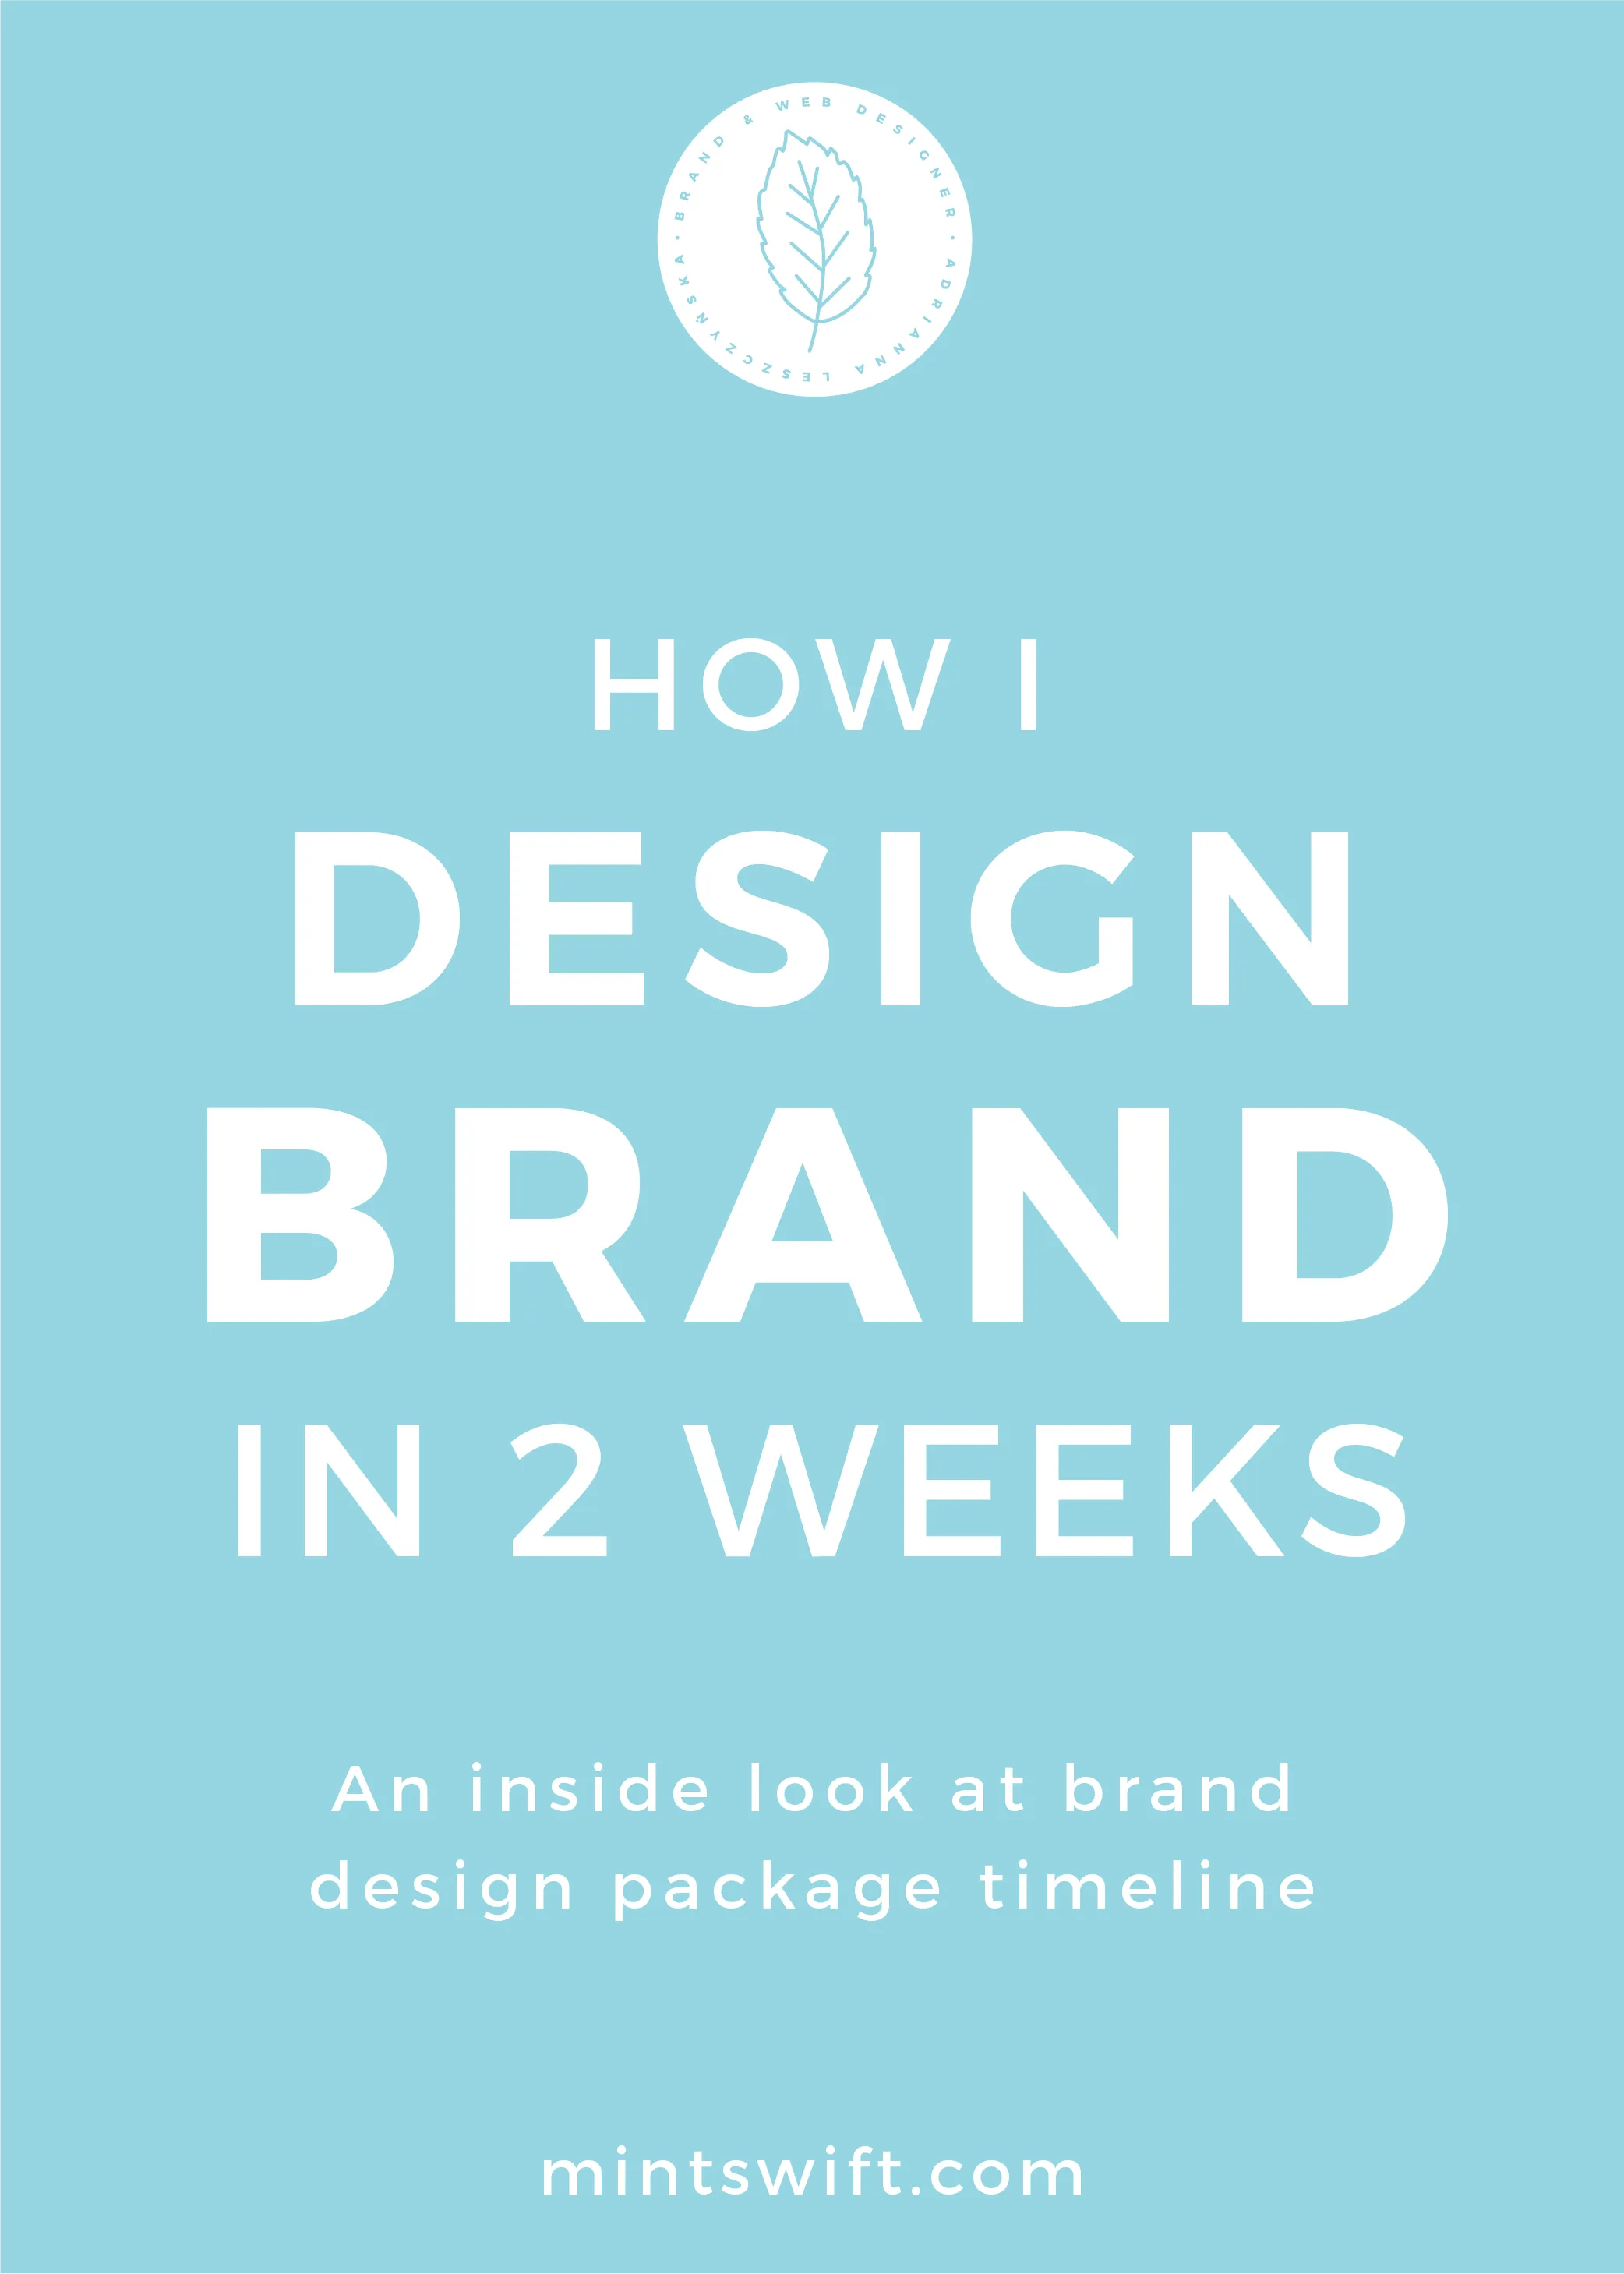 How I Design Brand in 2 weeks. An Inside Look at Brand Design Package Timeline - MintSwift